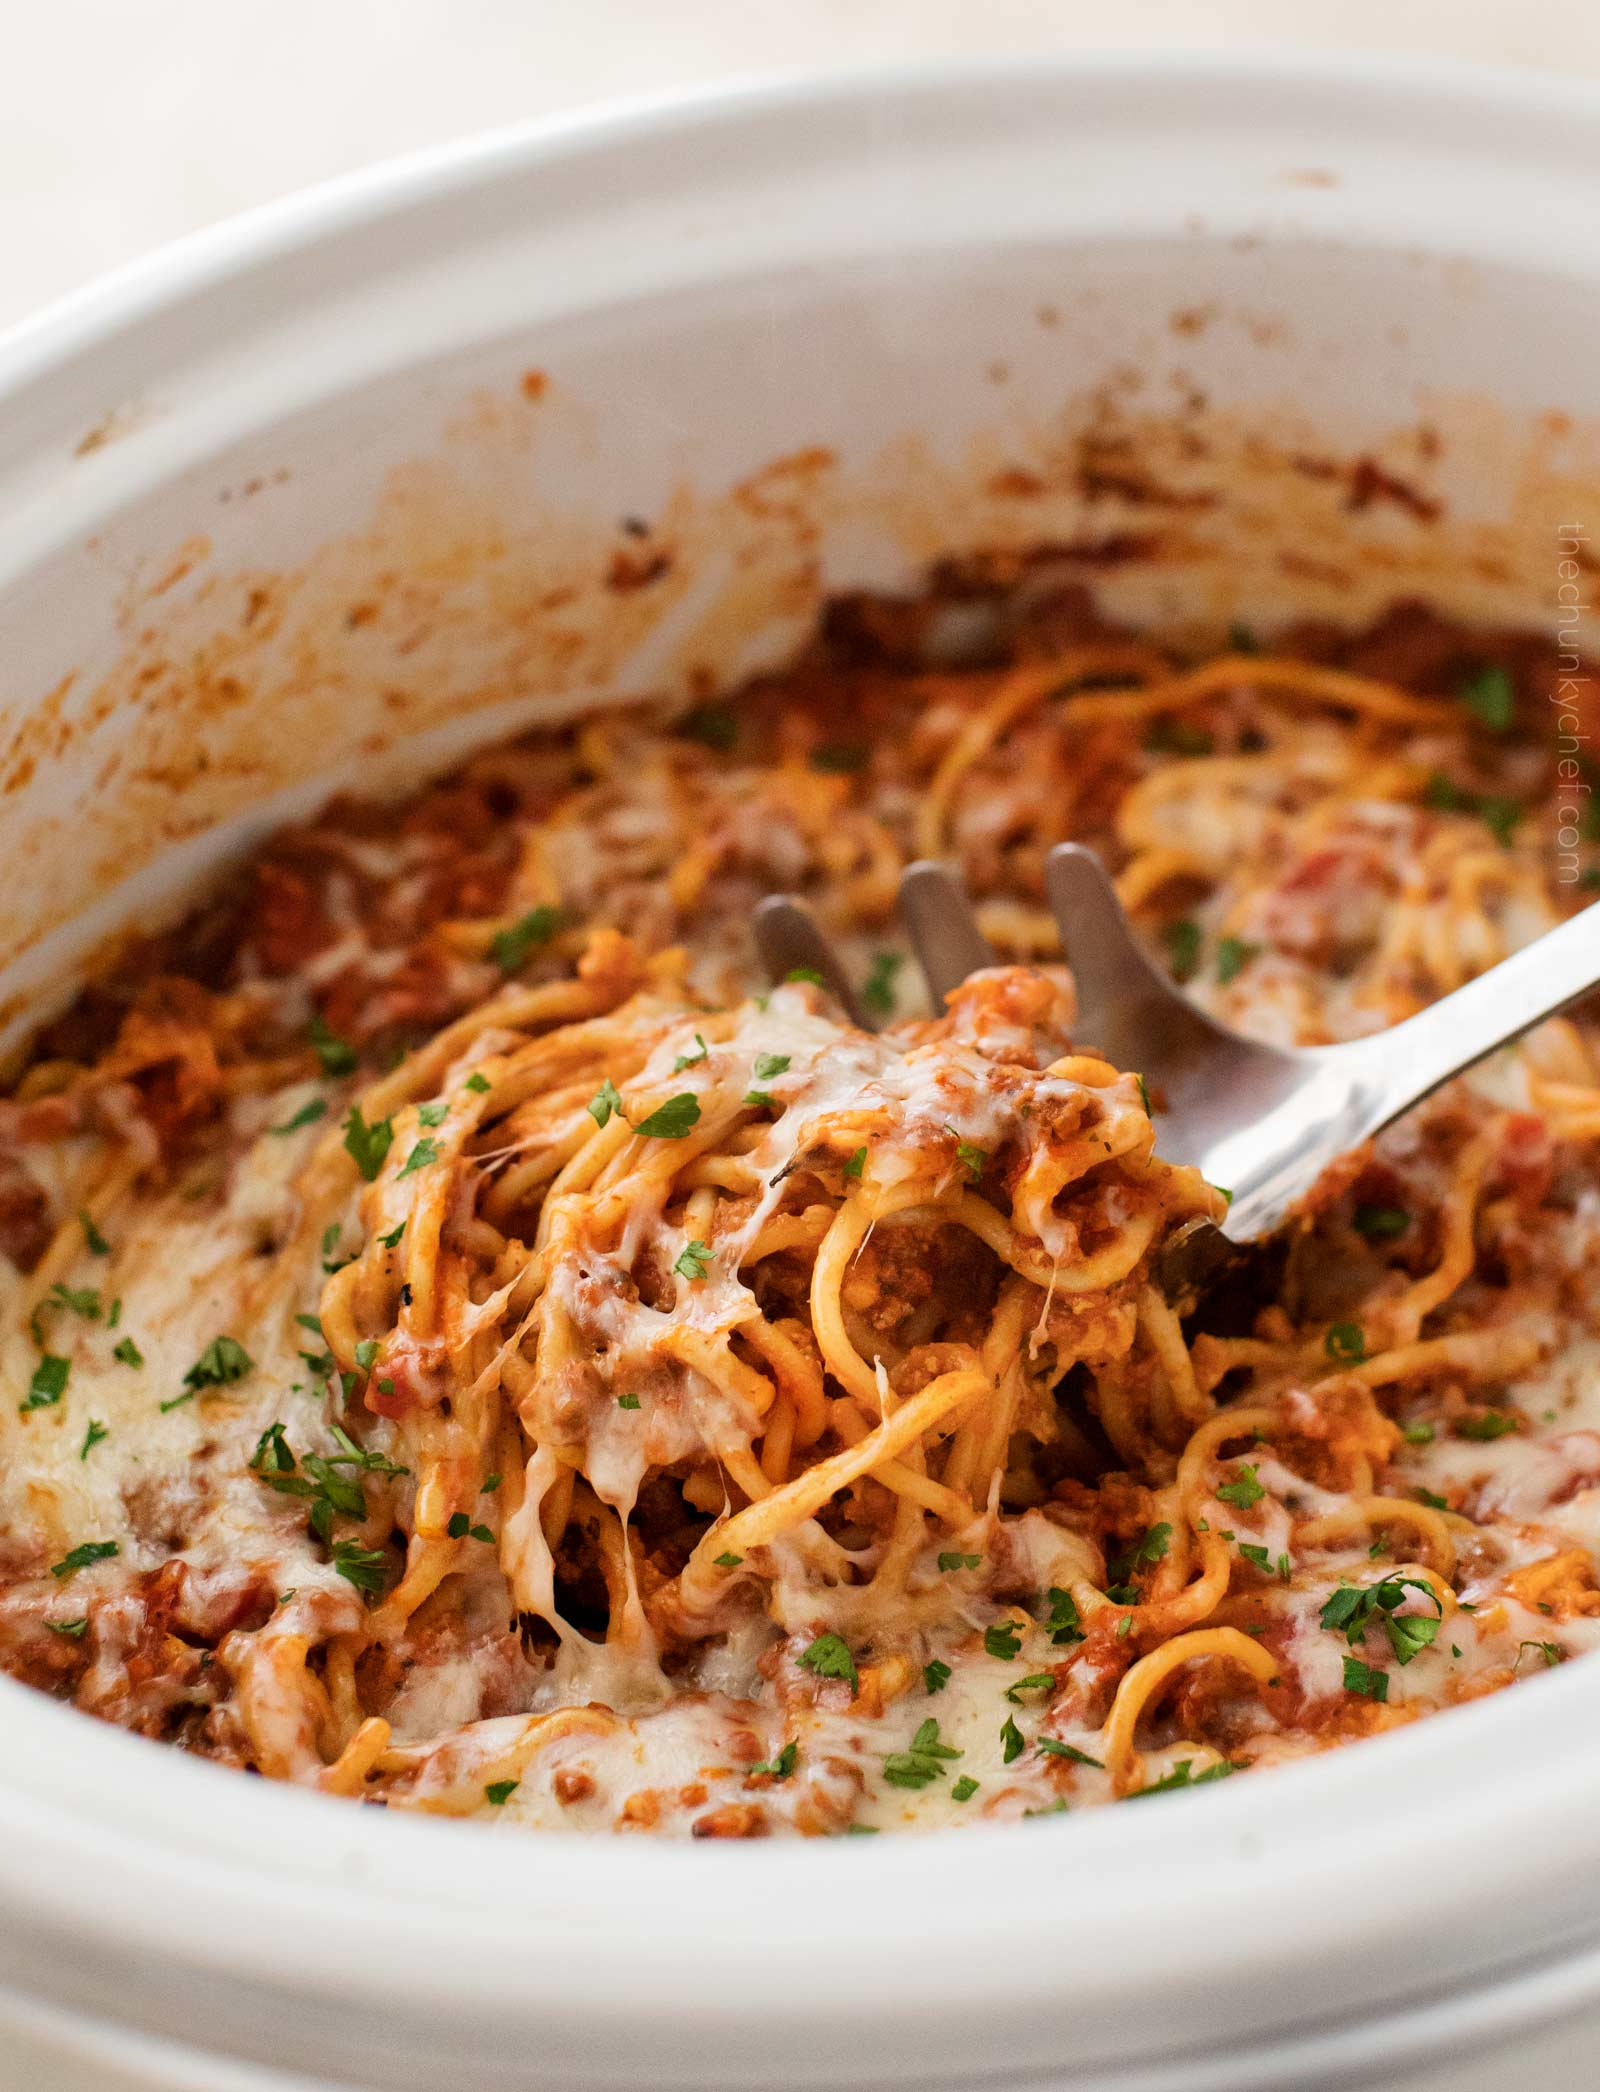 Scoop of crockpot spaghetti casserole